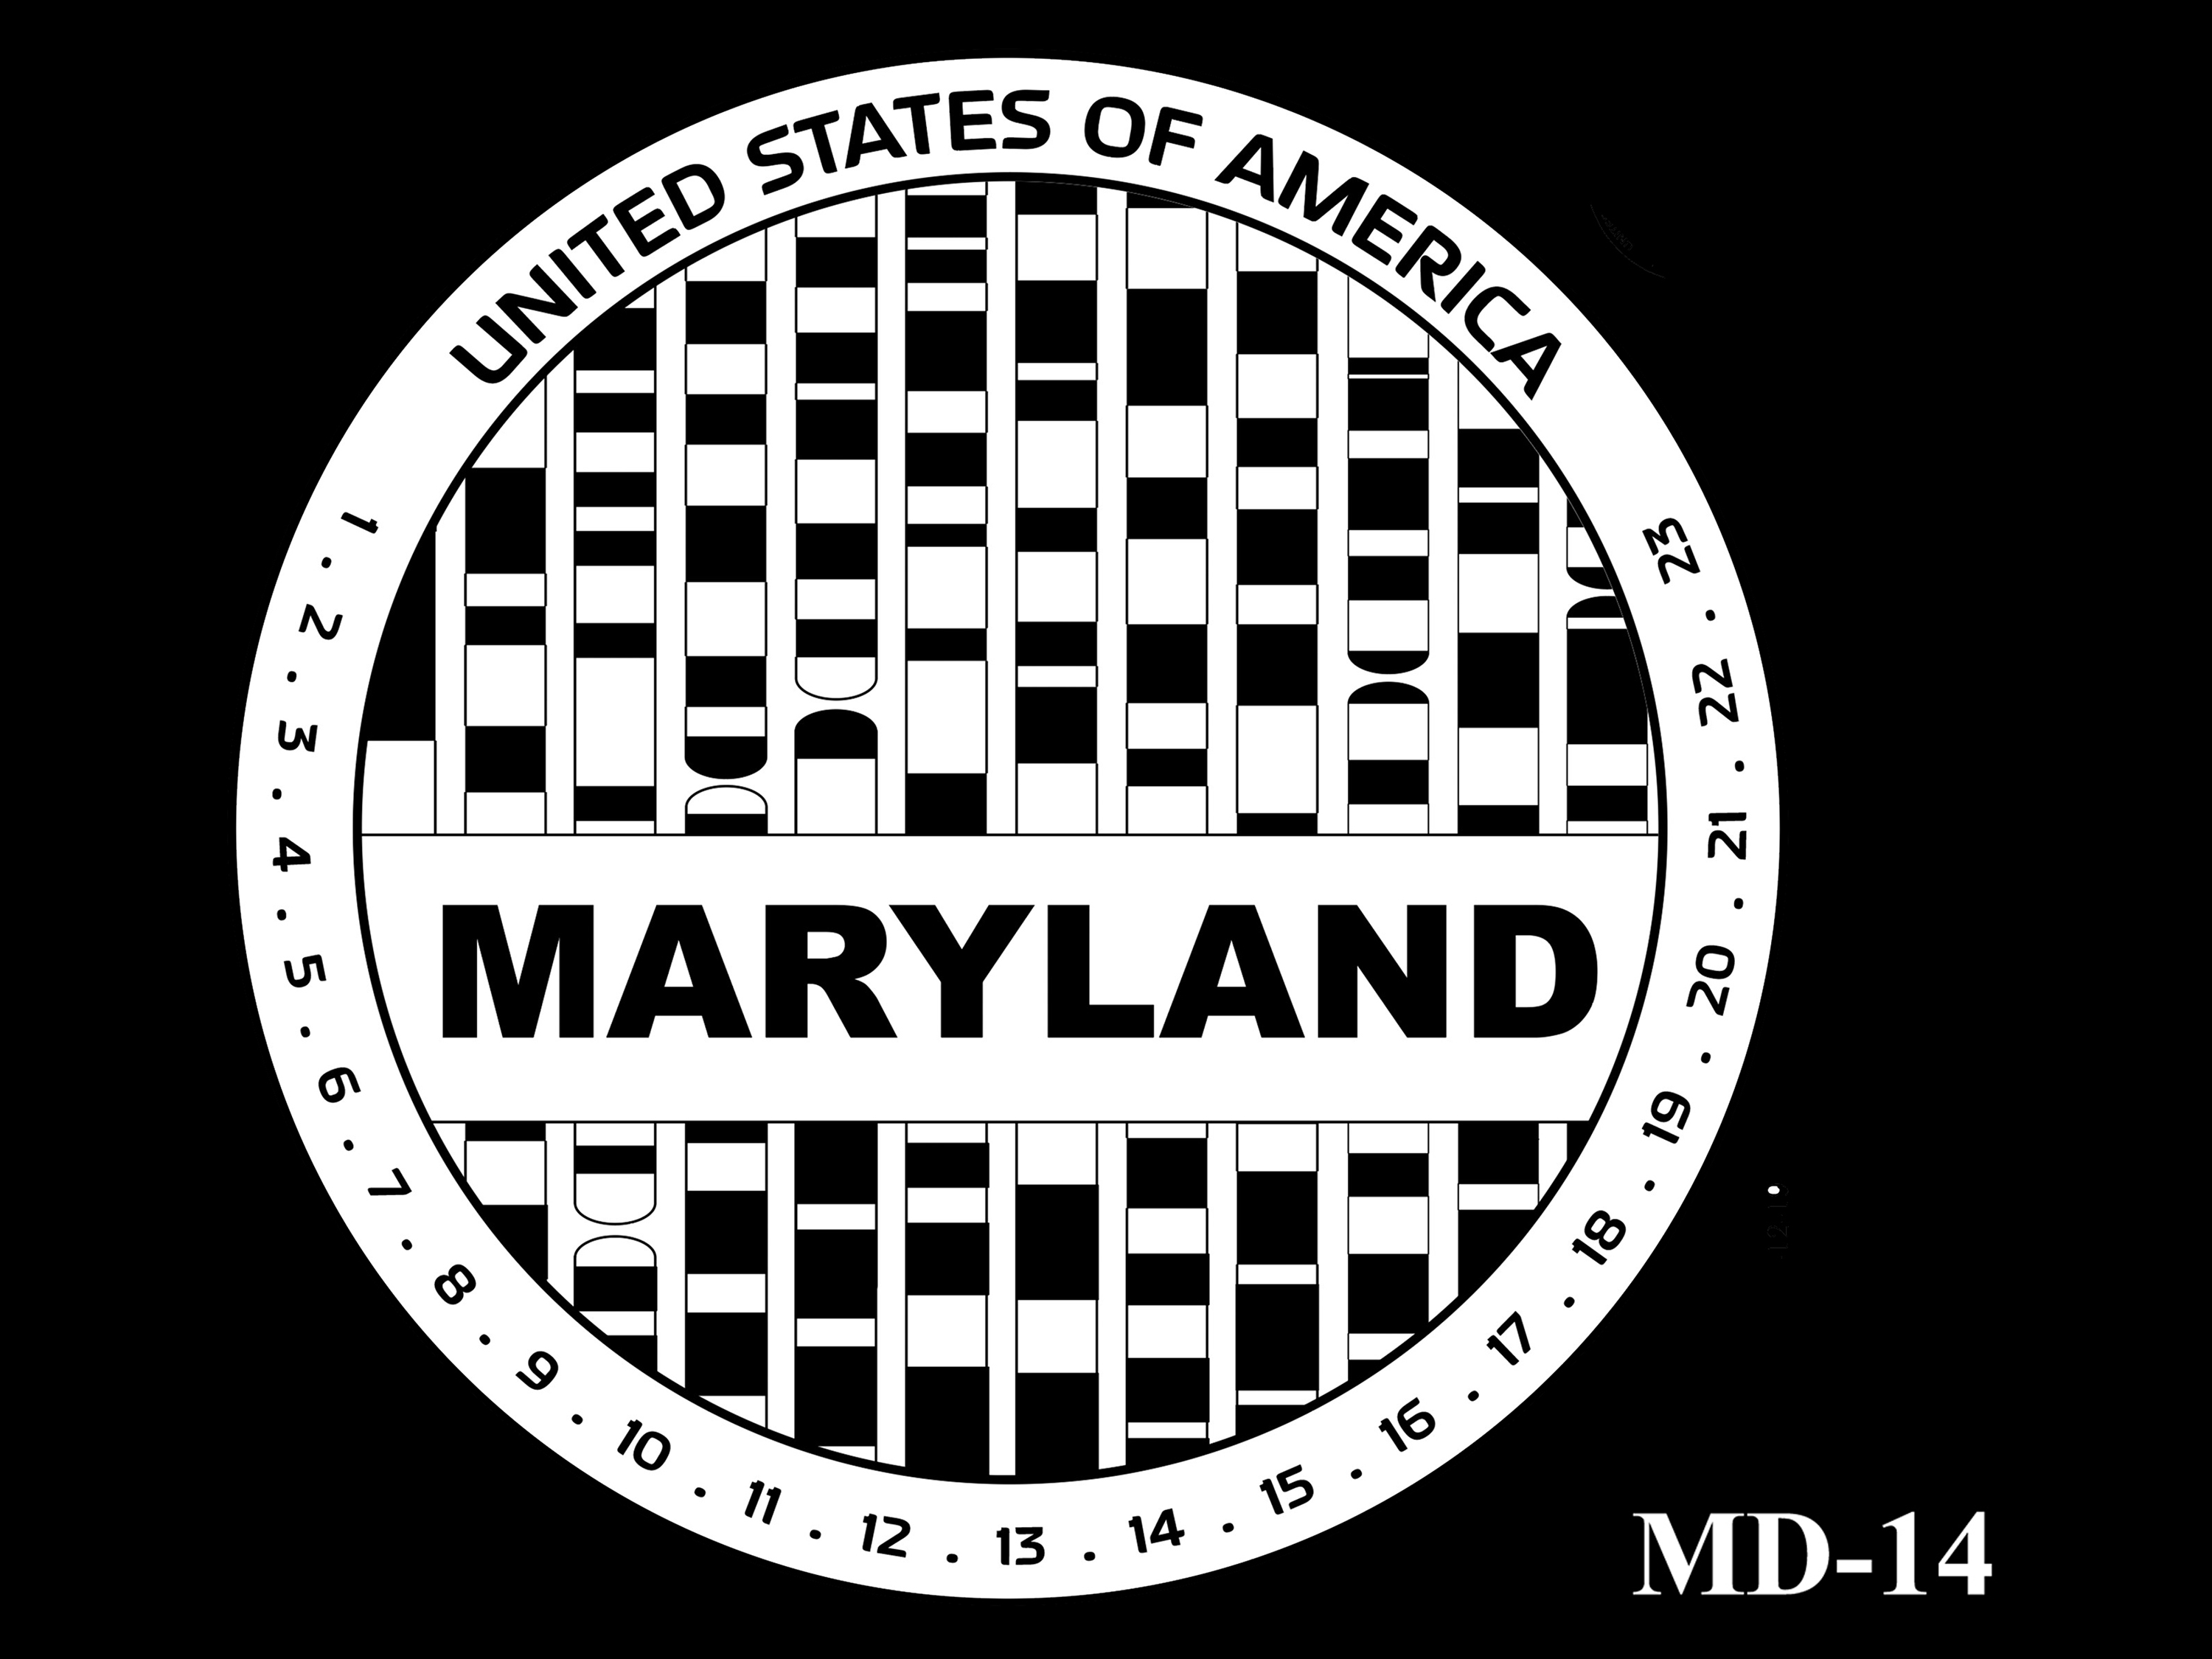 MD-14 -- 2020 American Innovation $1 Coin - Maryland